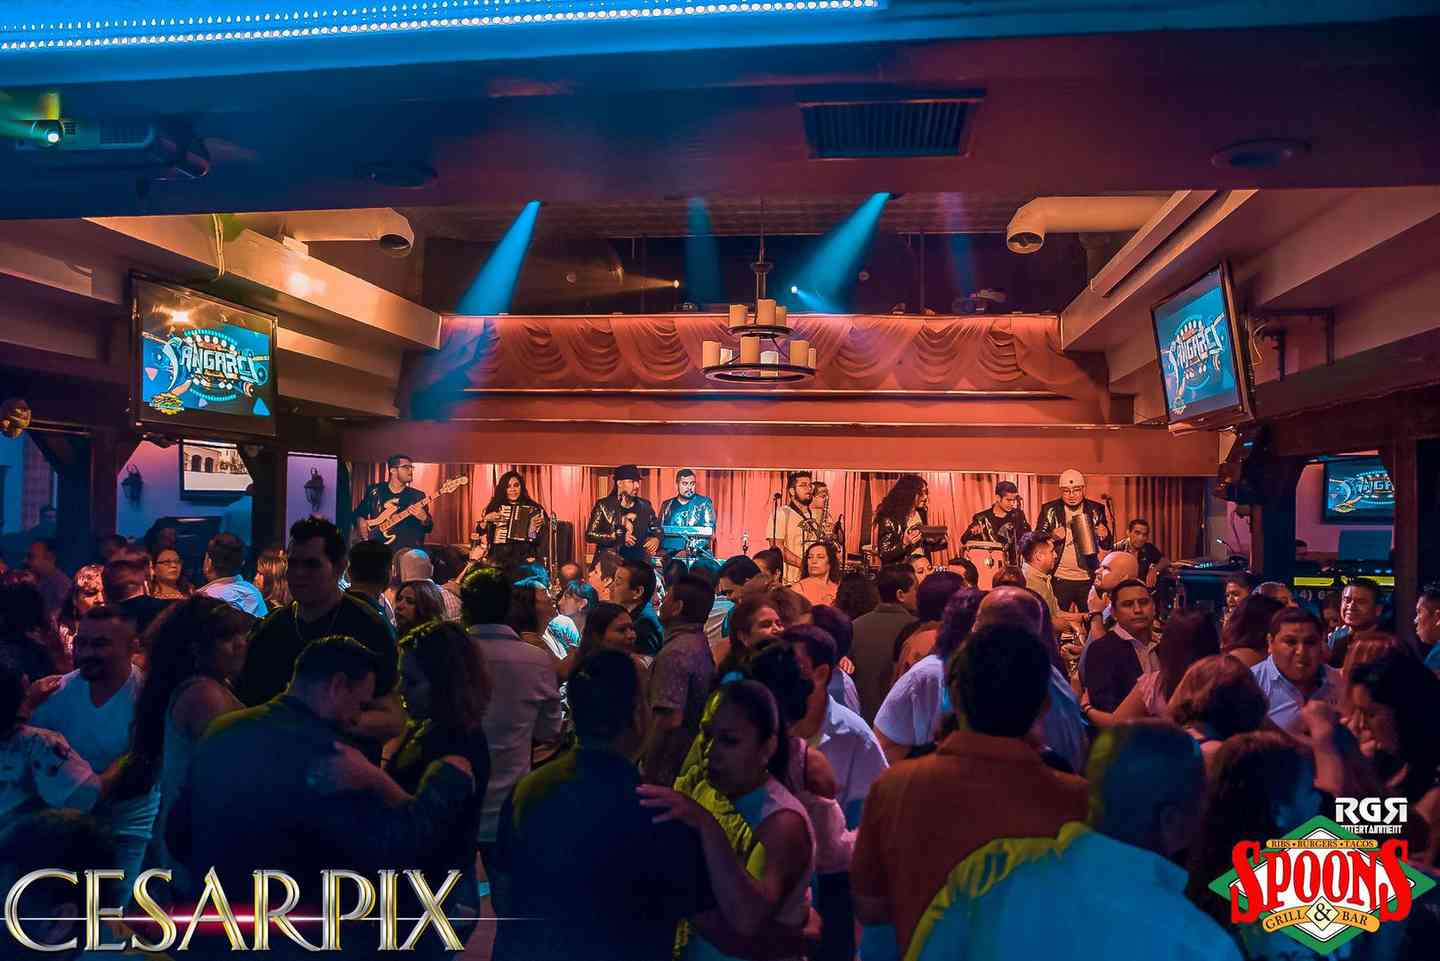 nightclub interior crowd photo